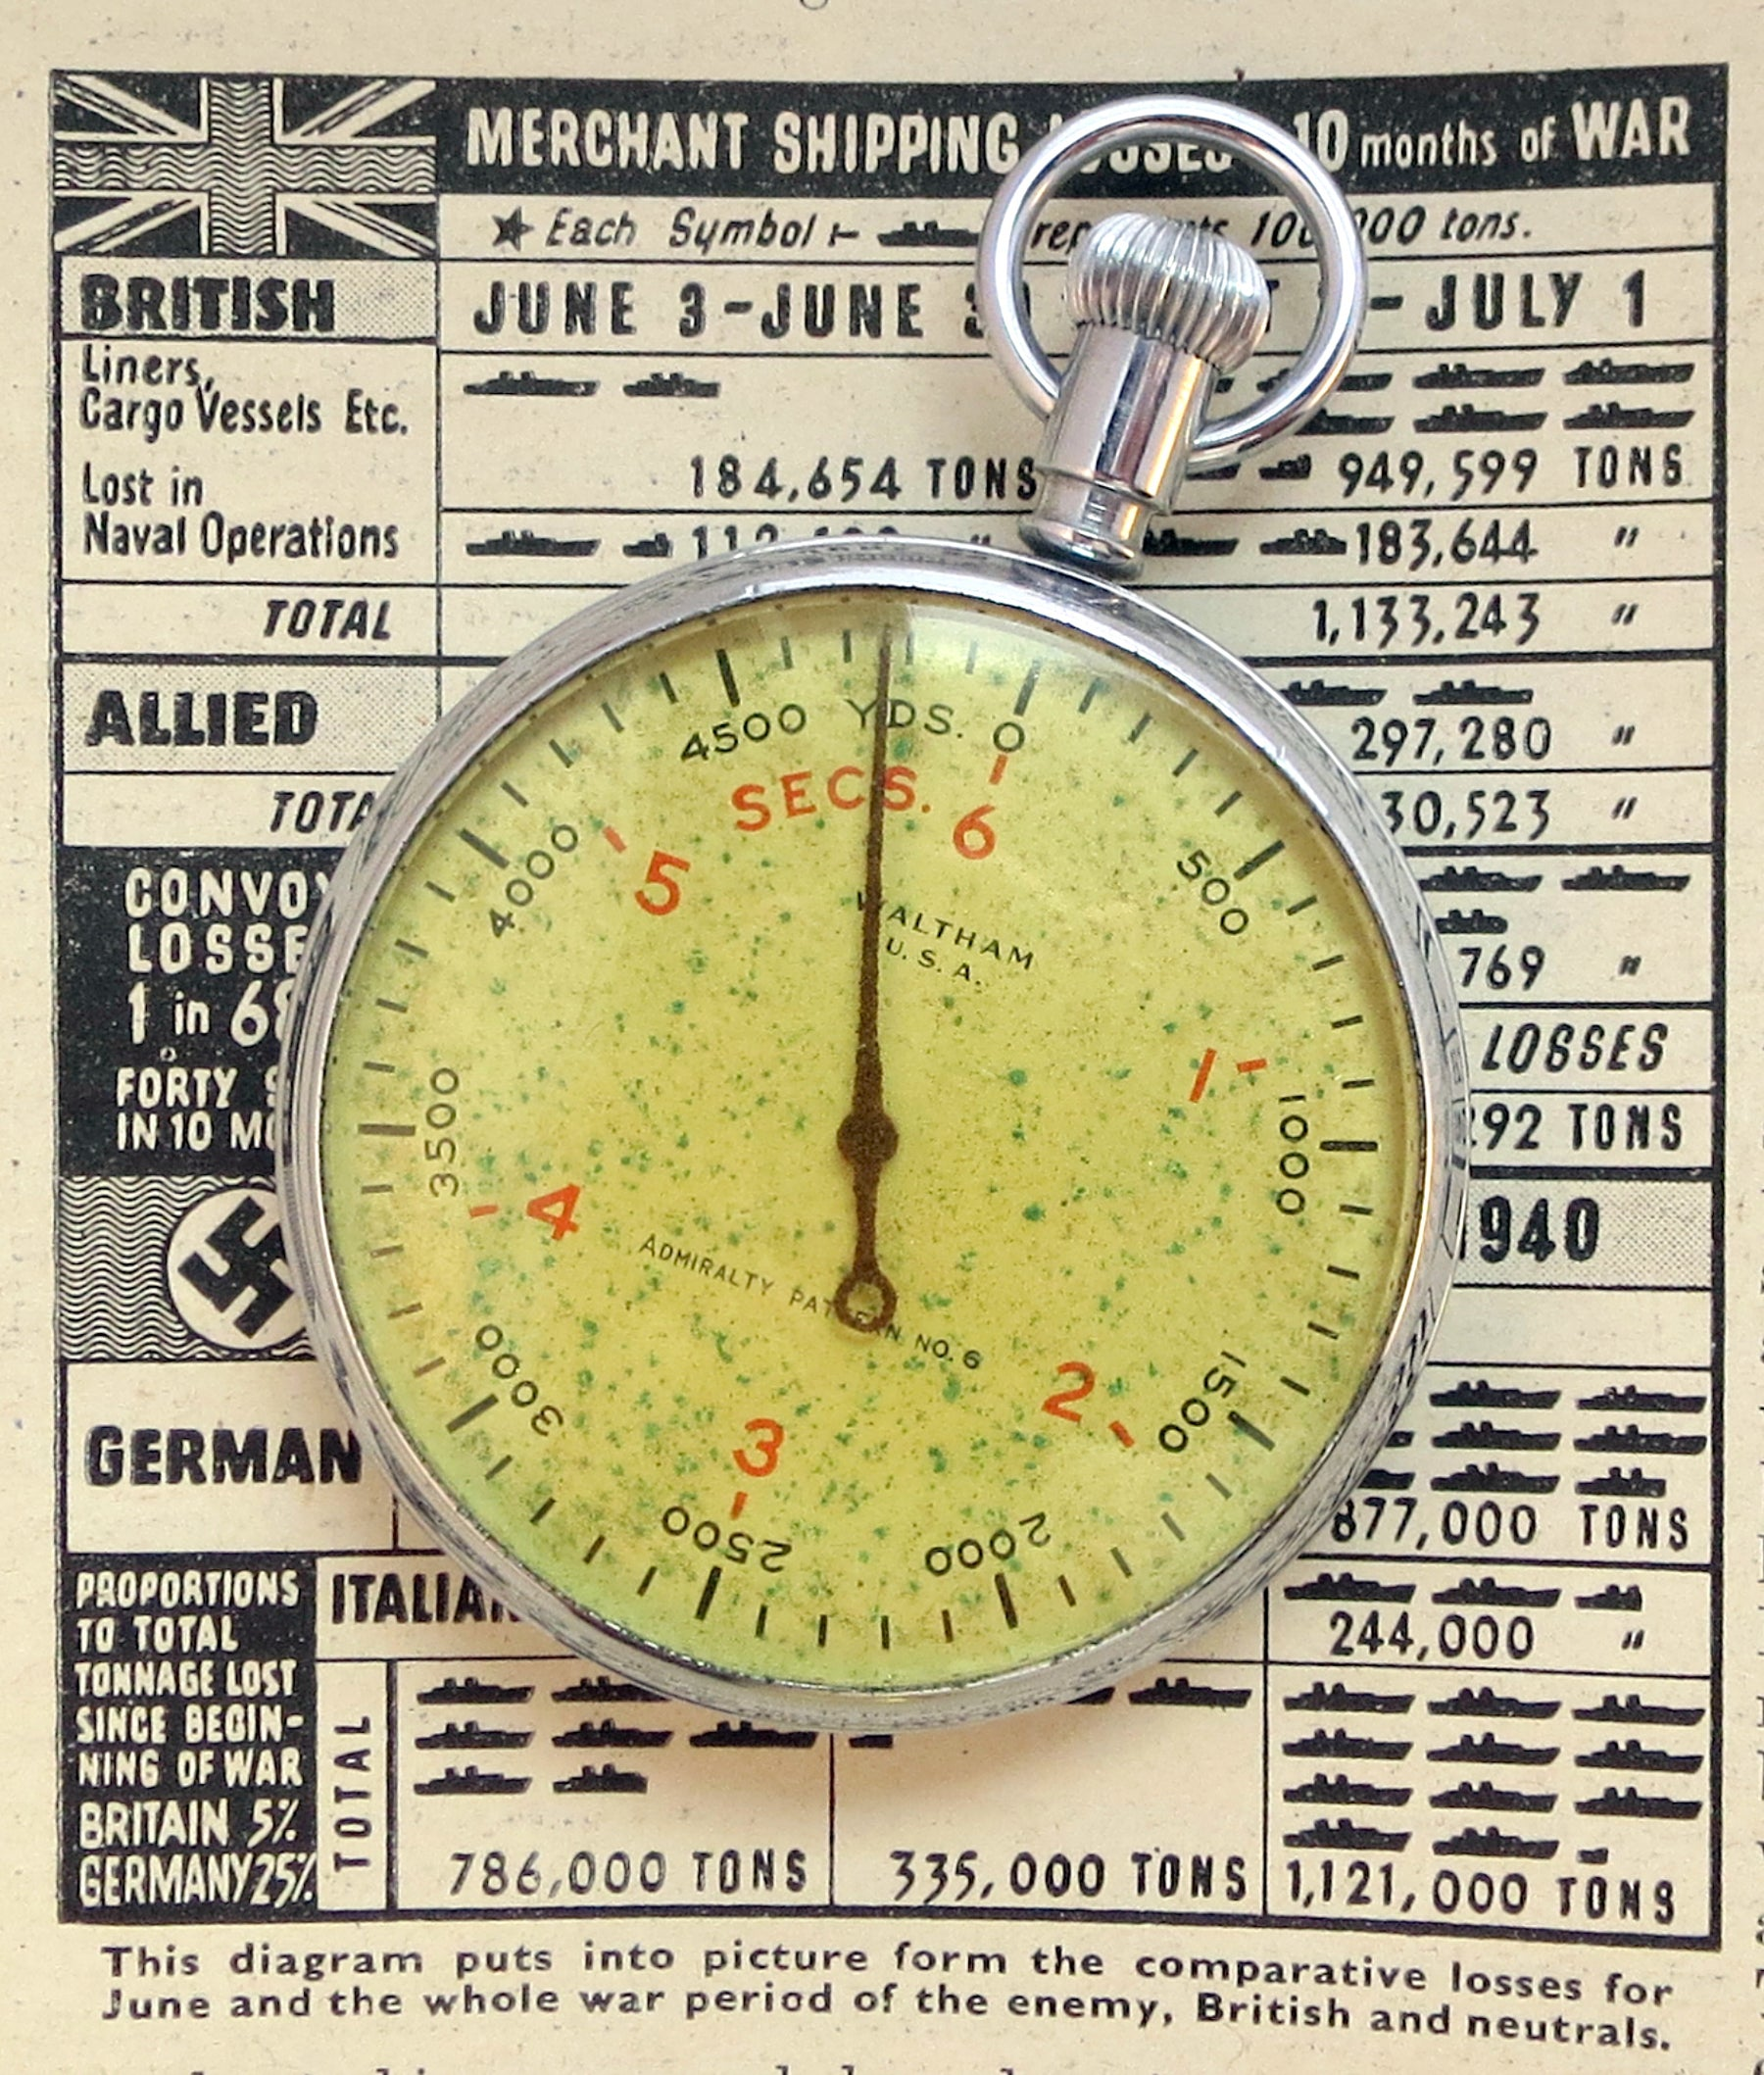 "Admiralty Pattern No 6 ASDIC stopwatch by Waltham. Note the scales in seconds and yards to provide an indication of the distance of an enemy submarine by measuring the time taken for a SONAR ""ping"" to travel to and reflect back to the detection vessel."